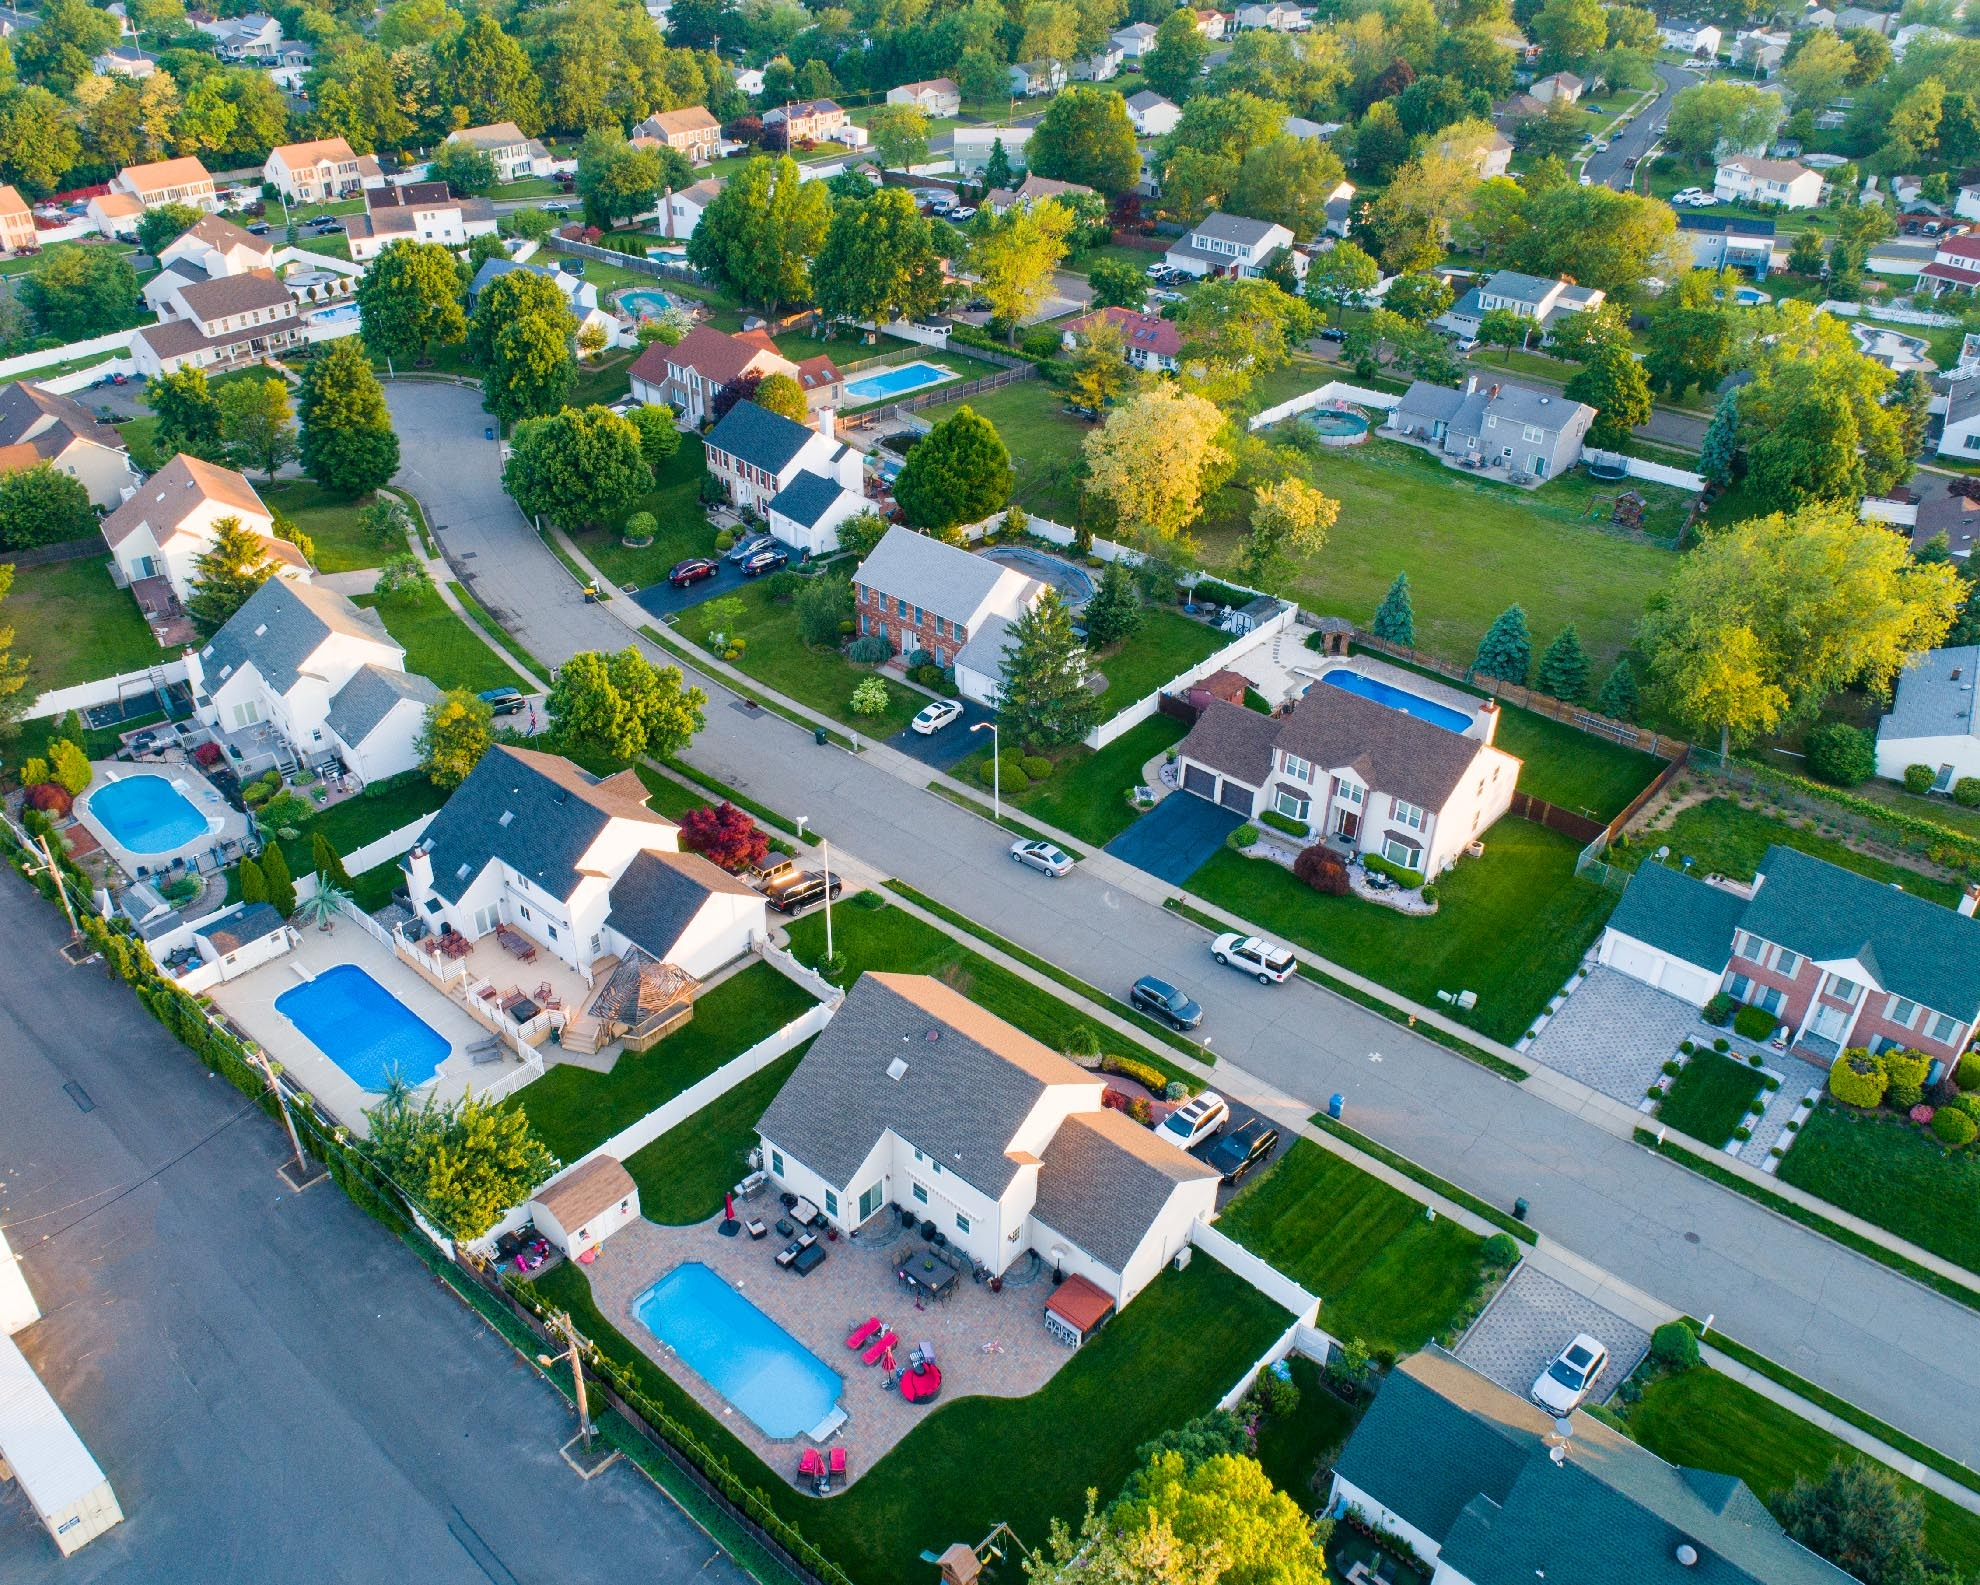 Drone Photograph of Hazlet NJ Neighborhood